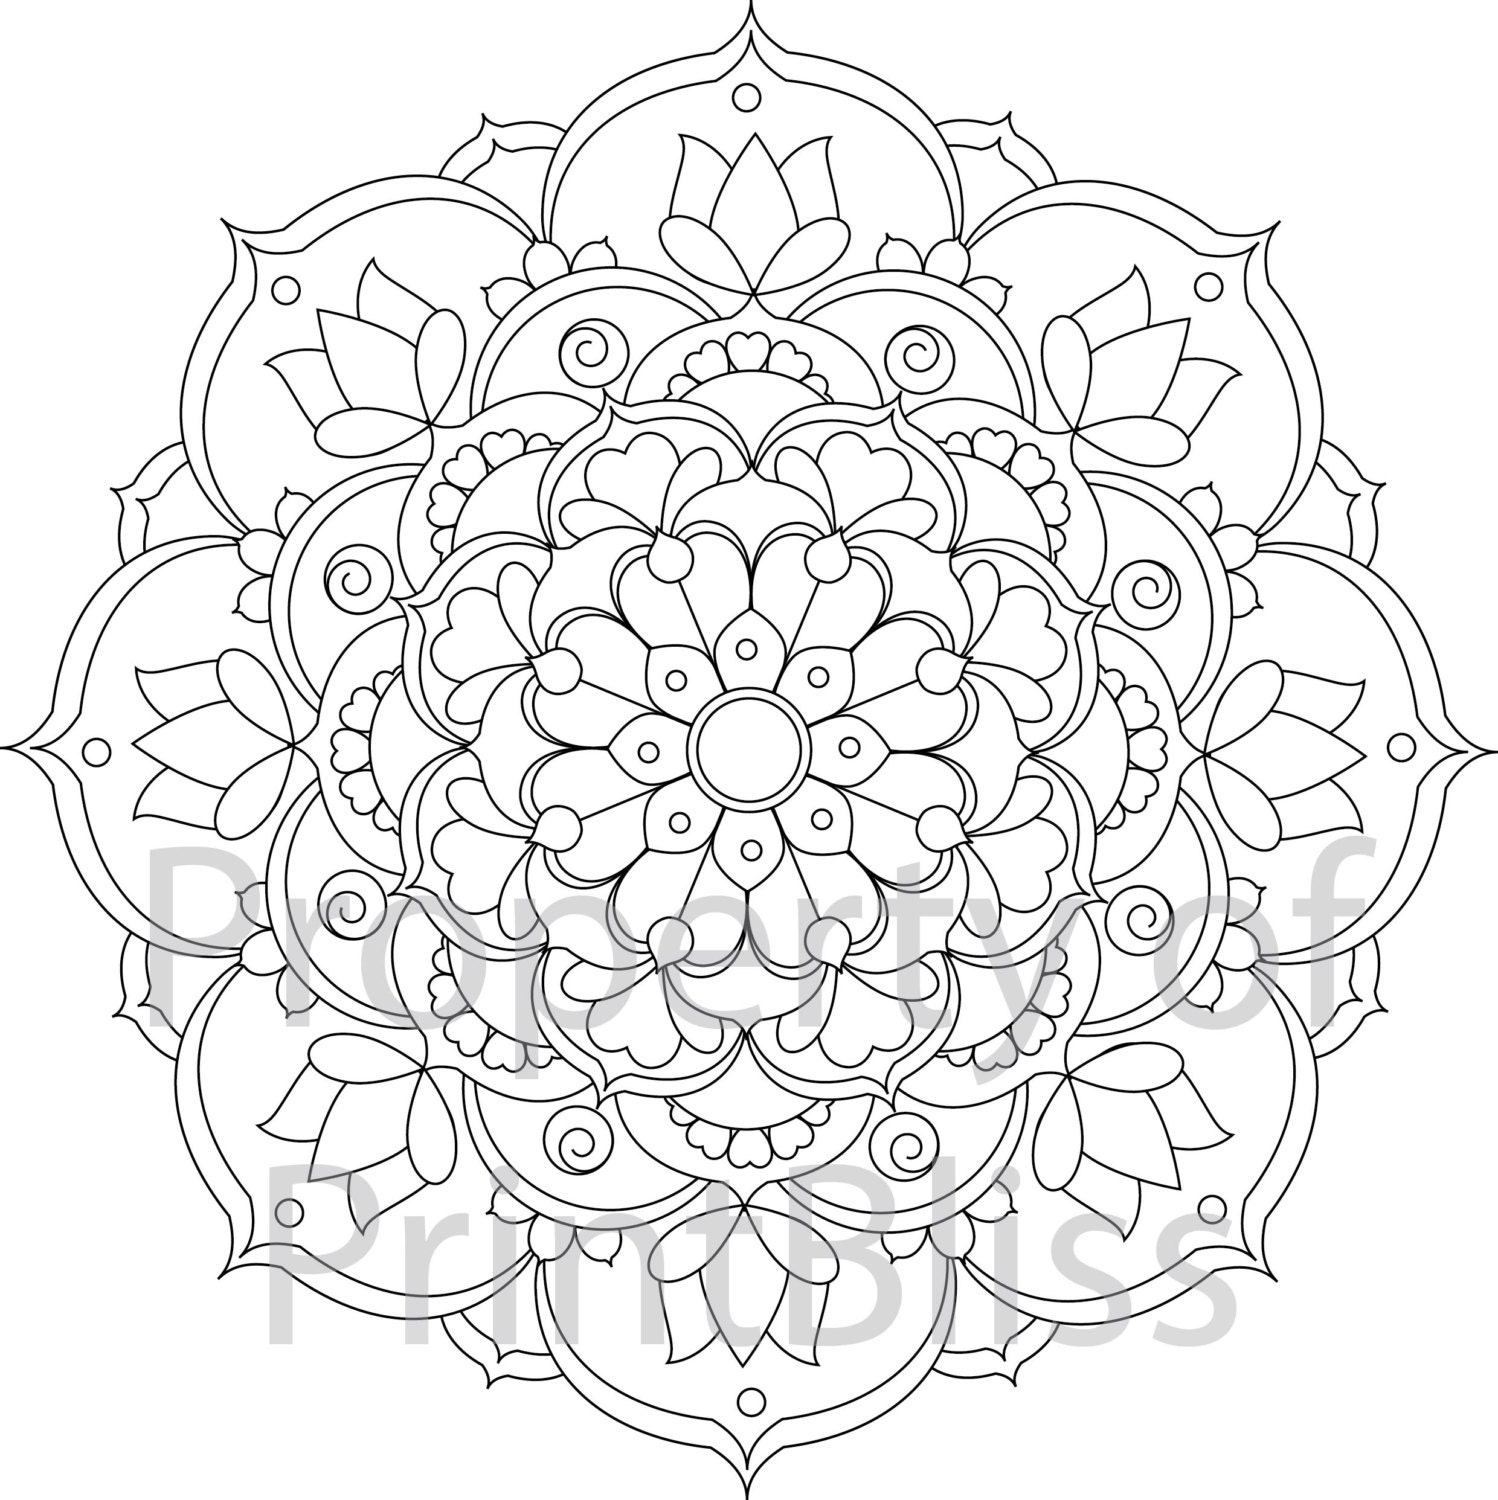 24 flower mandala printable coloring page. Black Bedroom Furniture Sets. Home Design Ideas